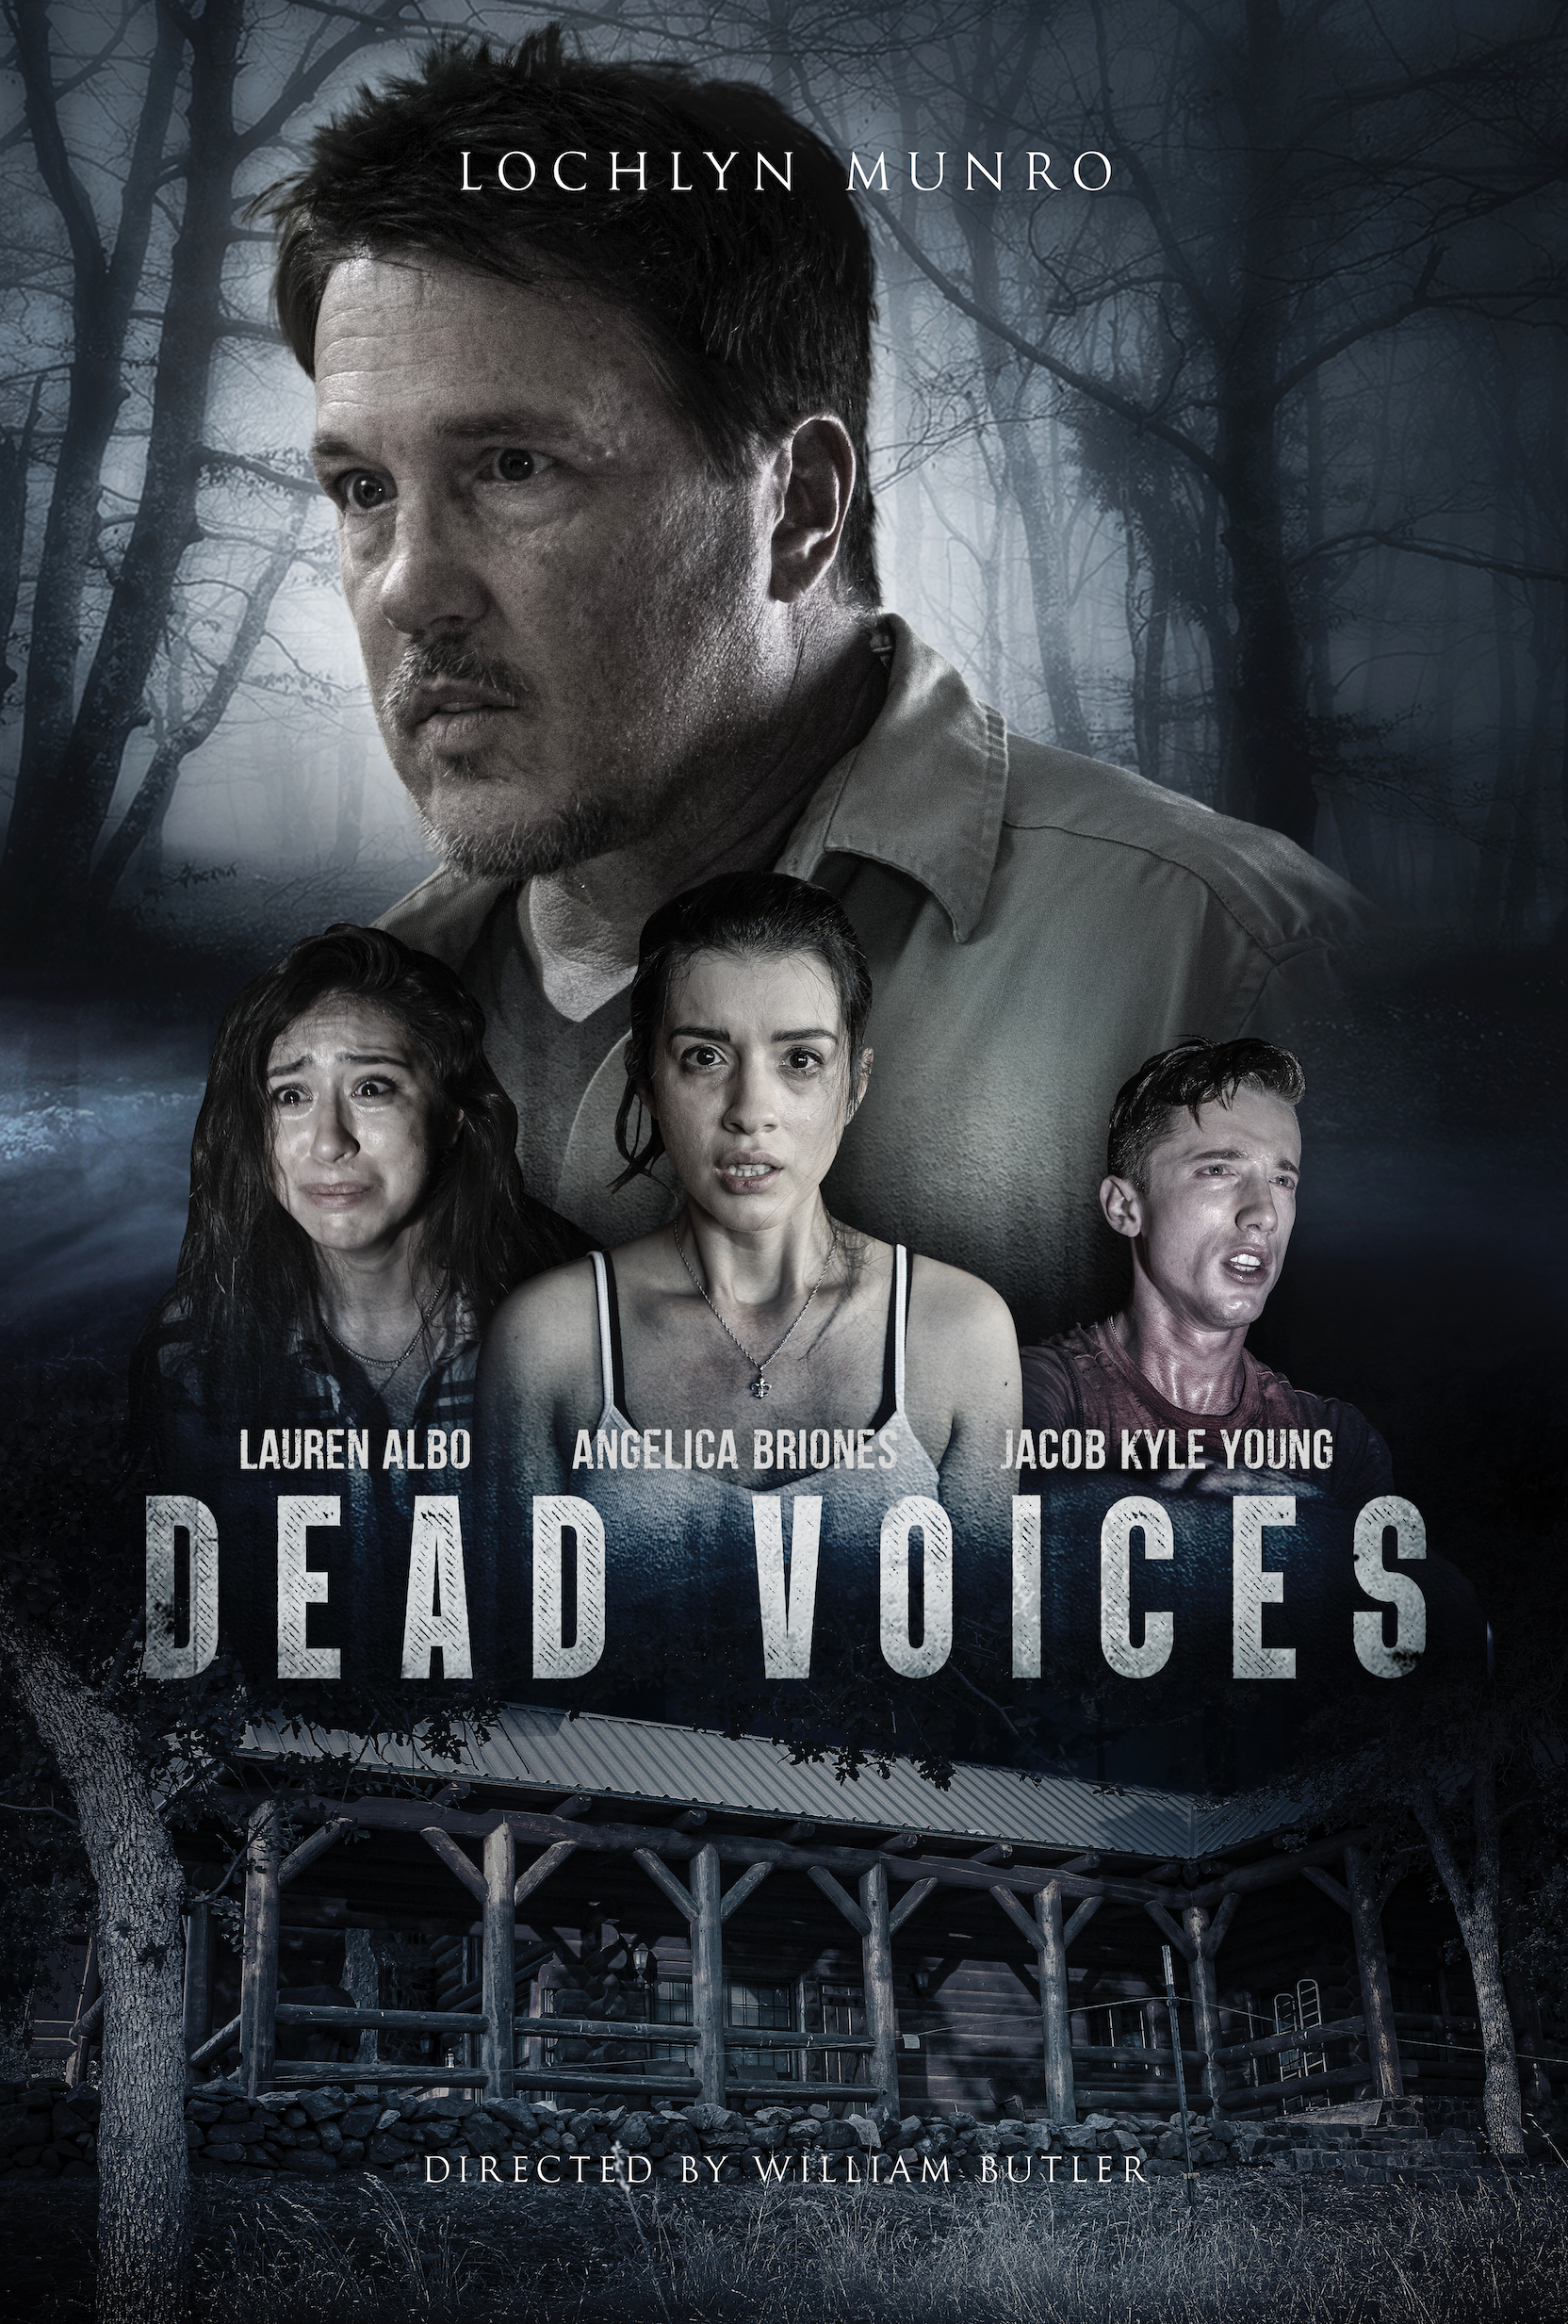 Riverdale Star in New Scary Movie, Dead Voices